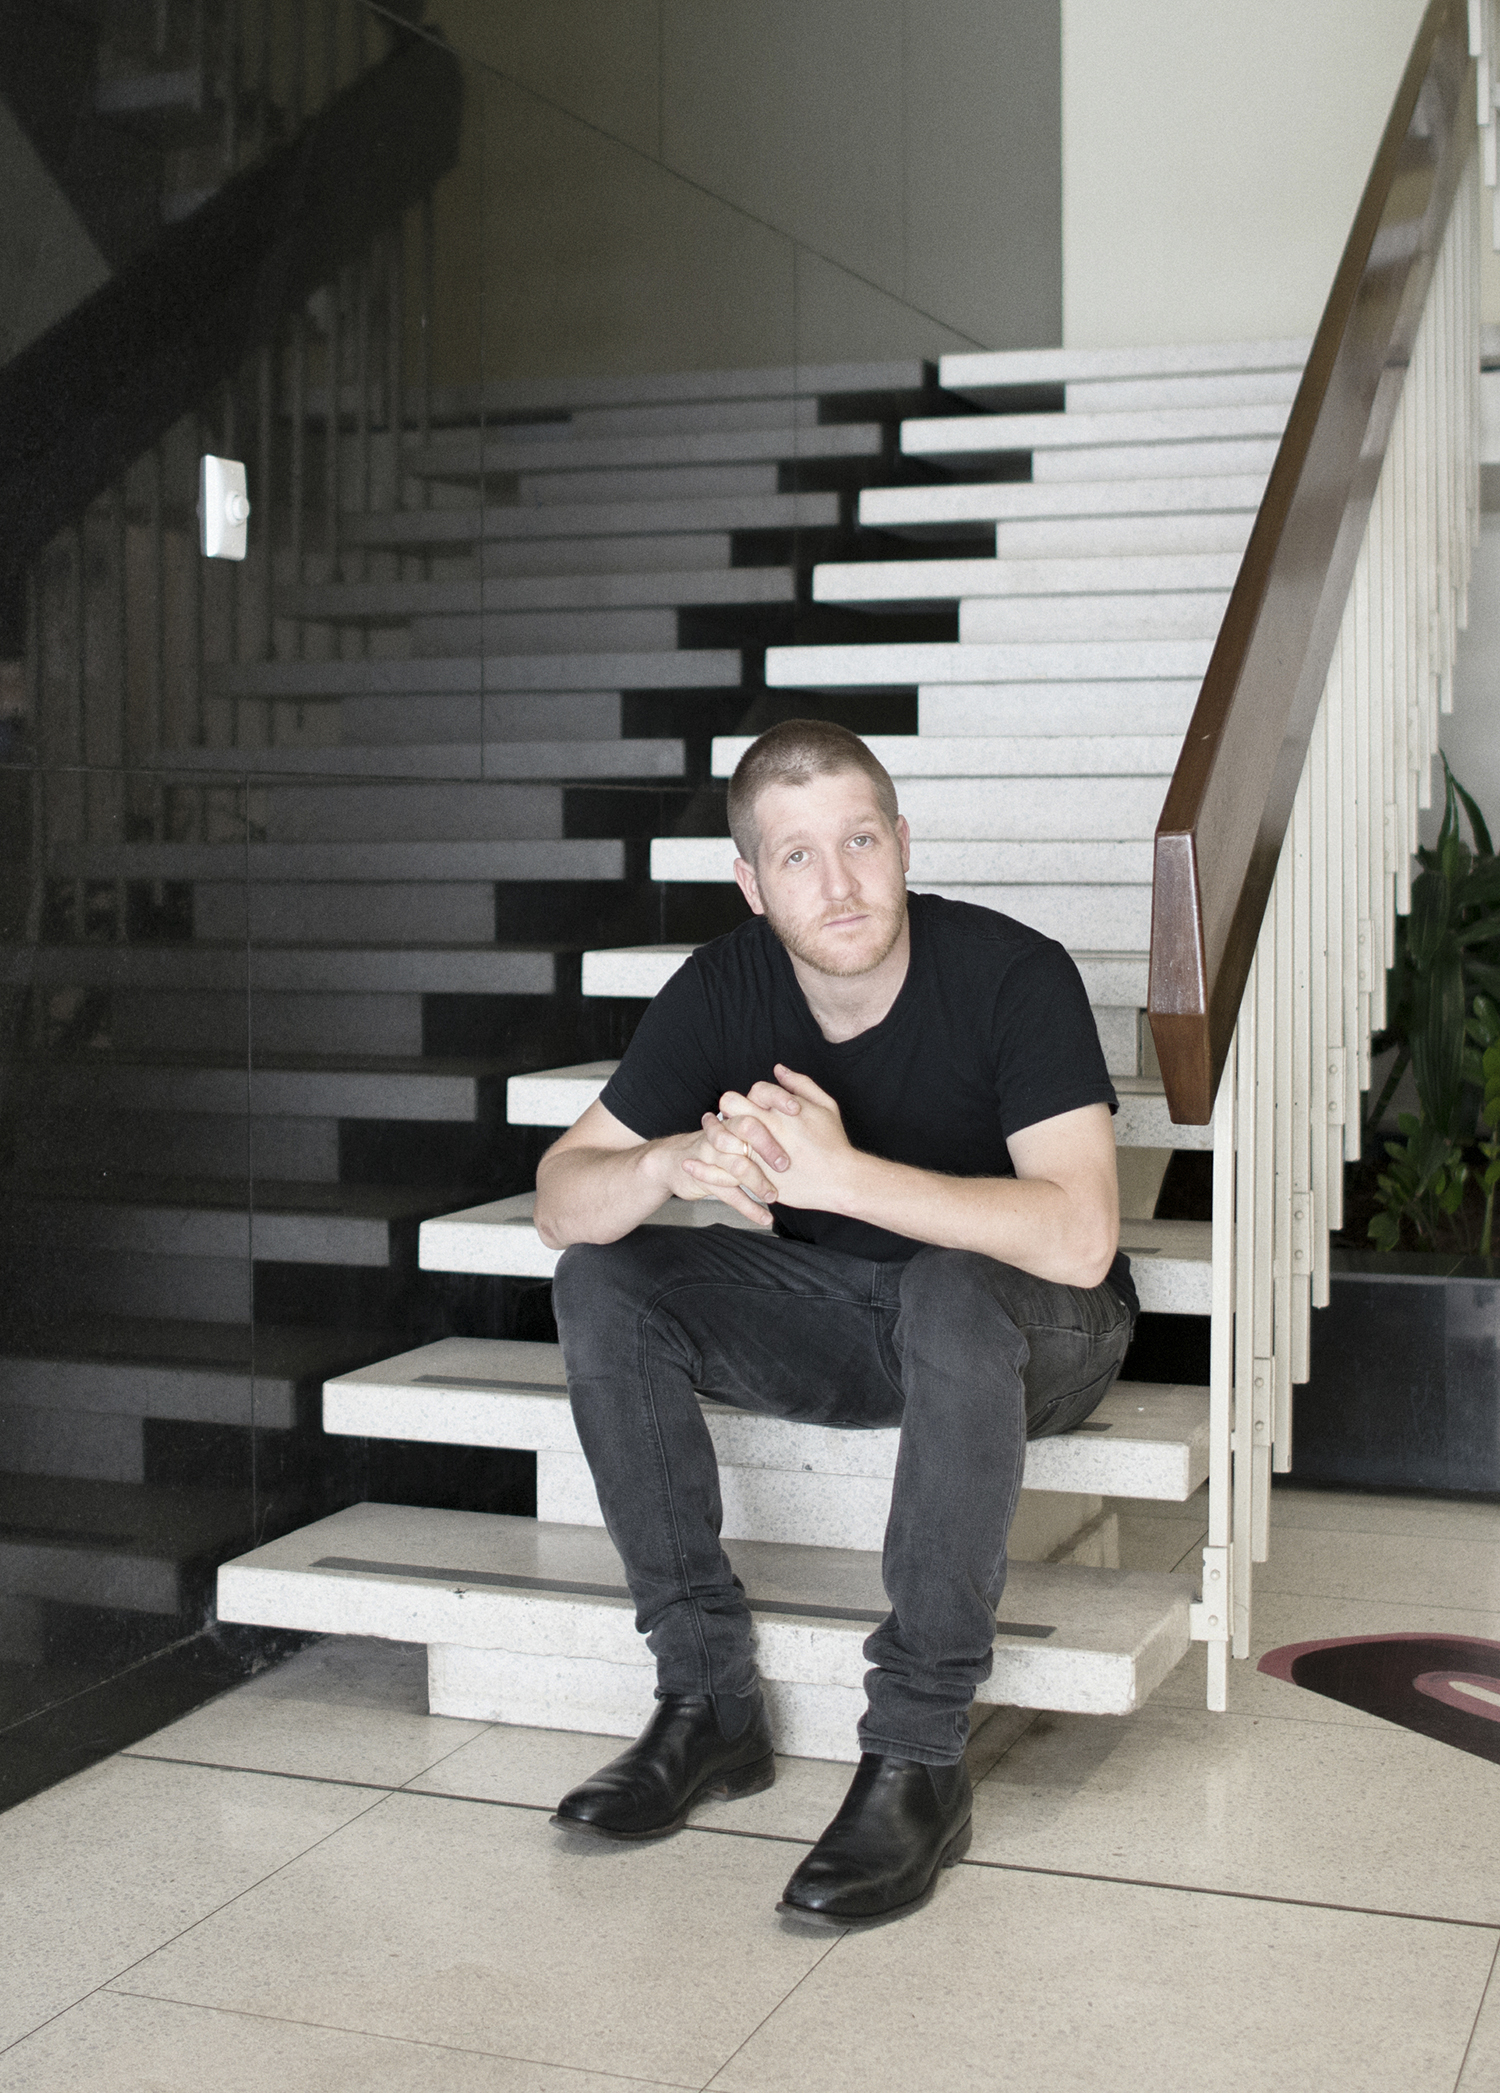 Heath Franco, 2016. Photo: George Voulgaropoulos, commissioned by Parramatta City Council